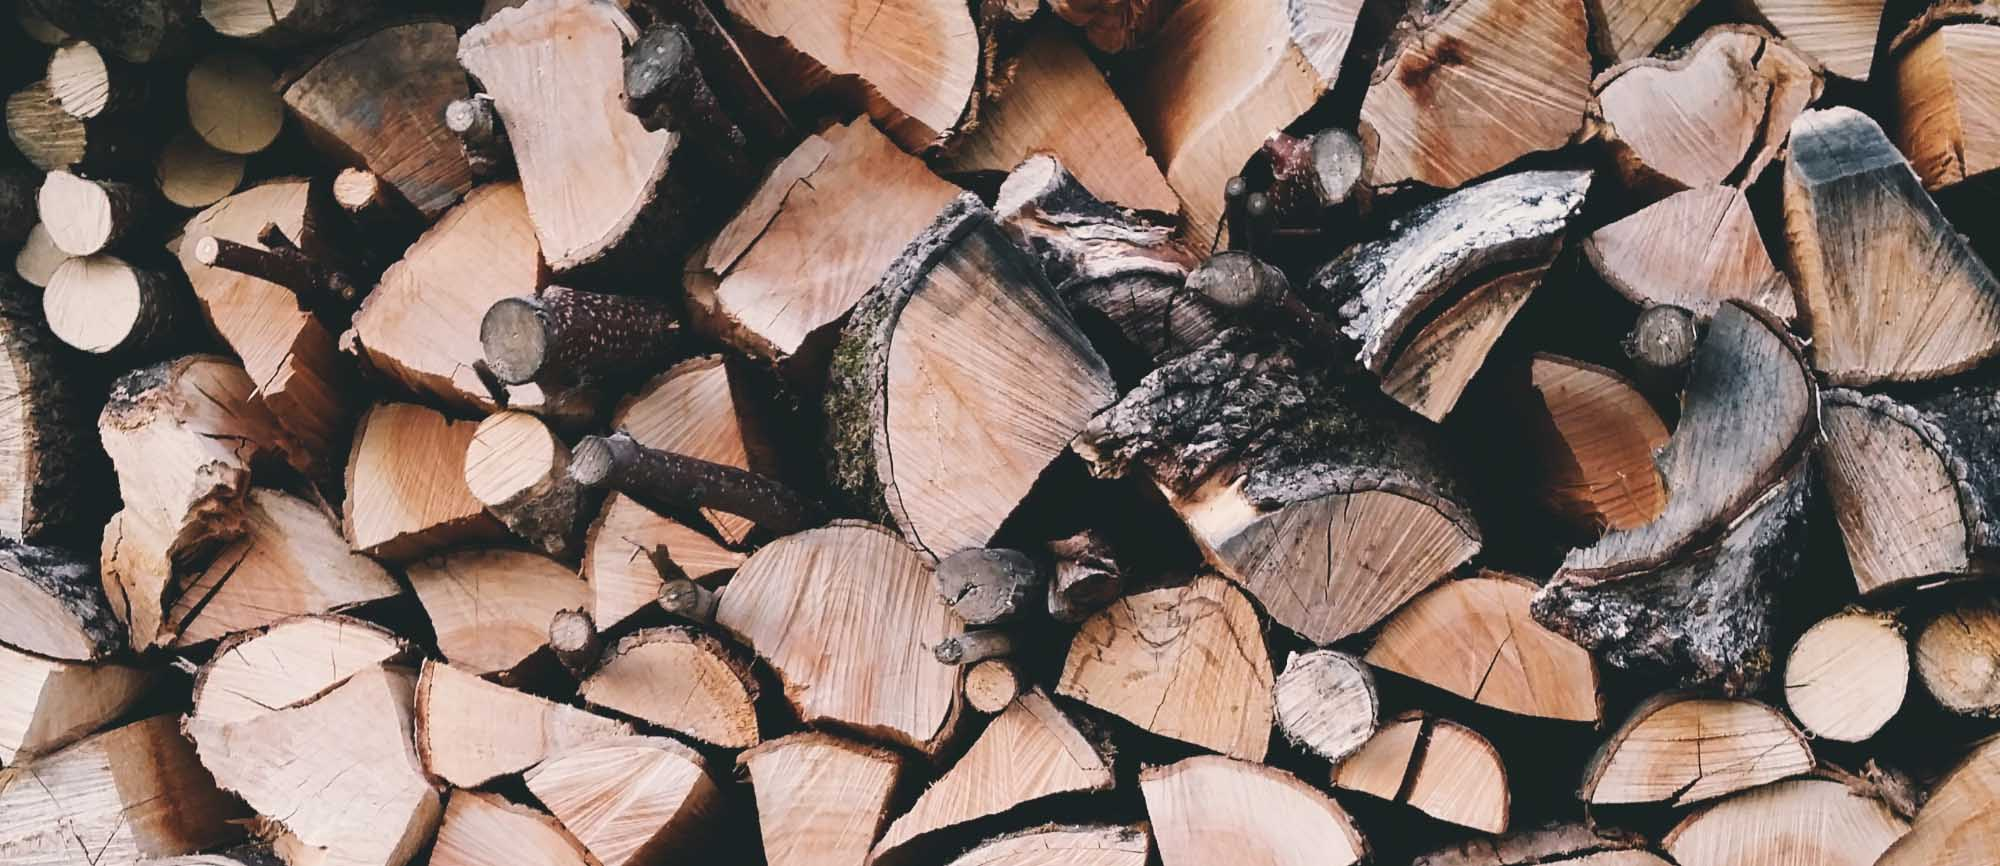 An Expert Guide on Storing Your Firewood